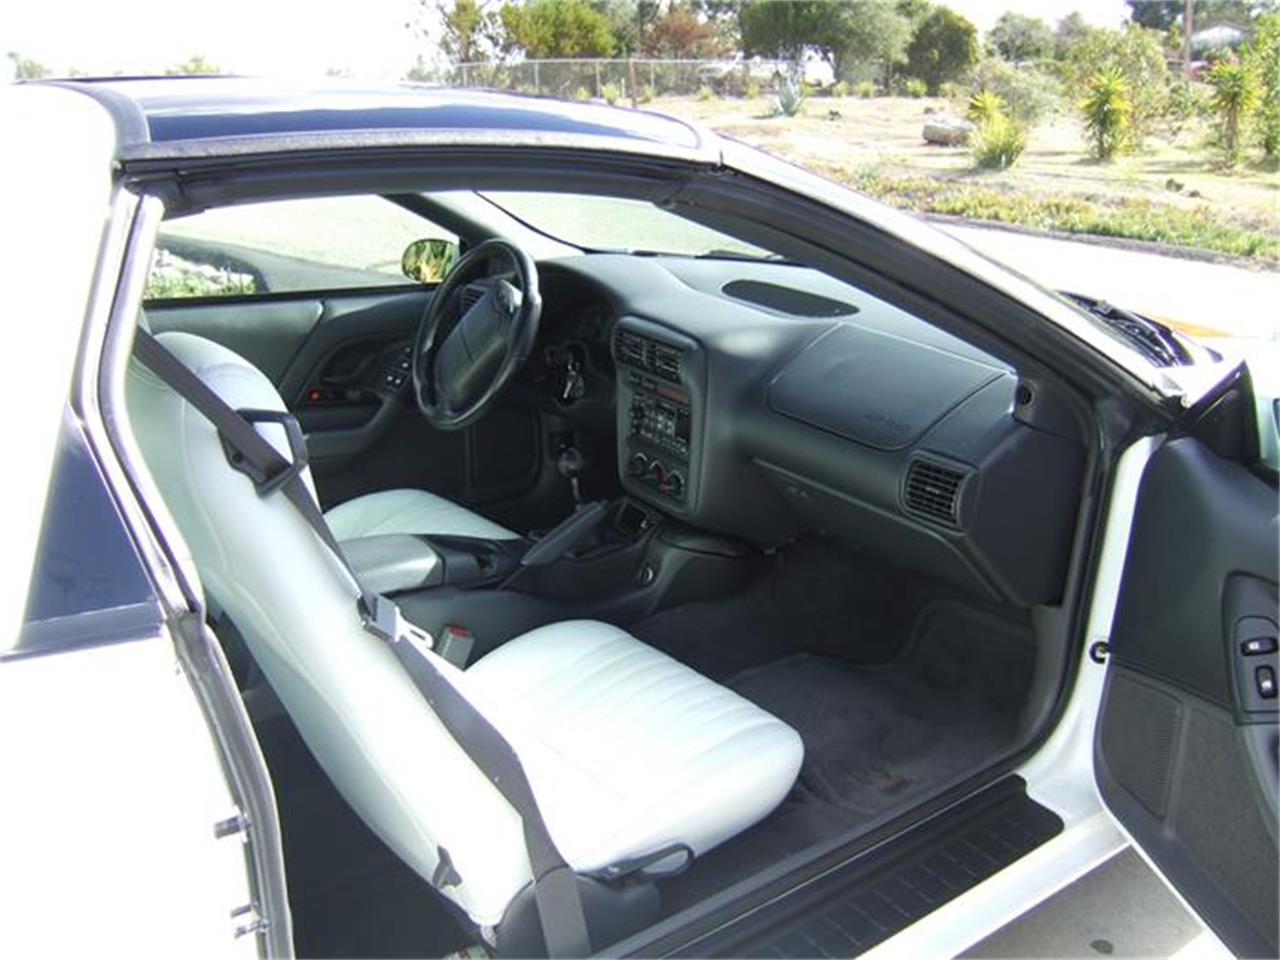 Large Picture of 1997 Chevrolet Camaro Z28 located in Escondido California - $16,000.00 Offered by a Private Seller - B1LI